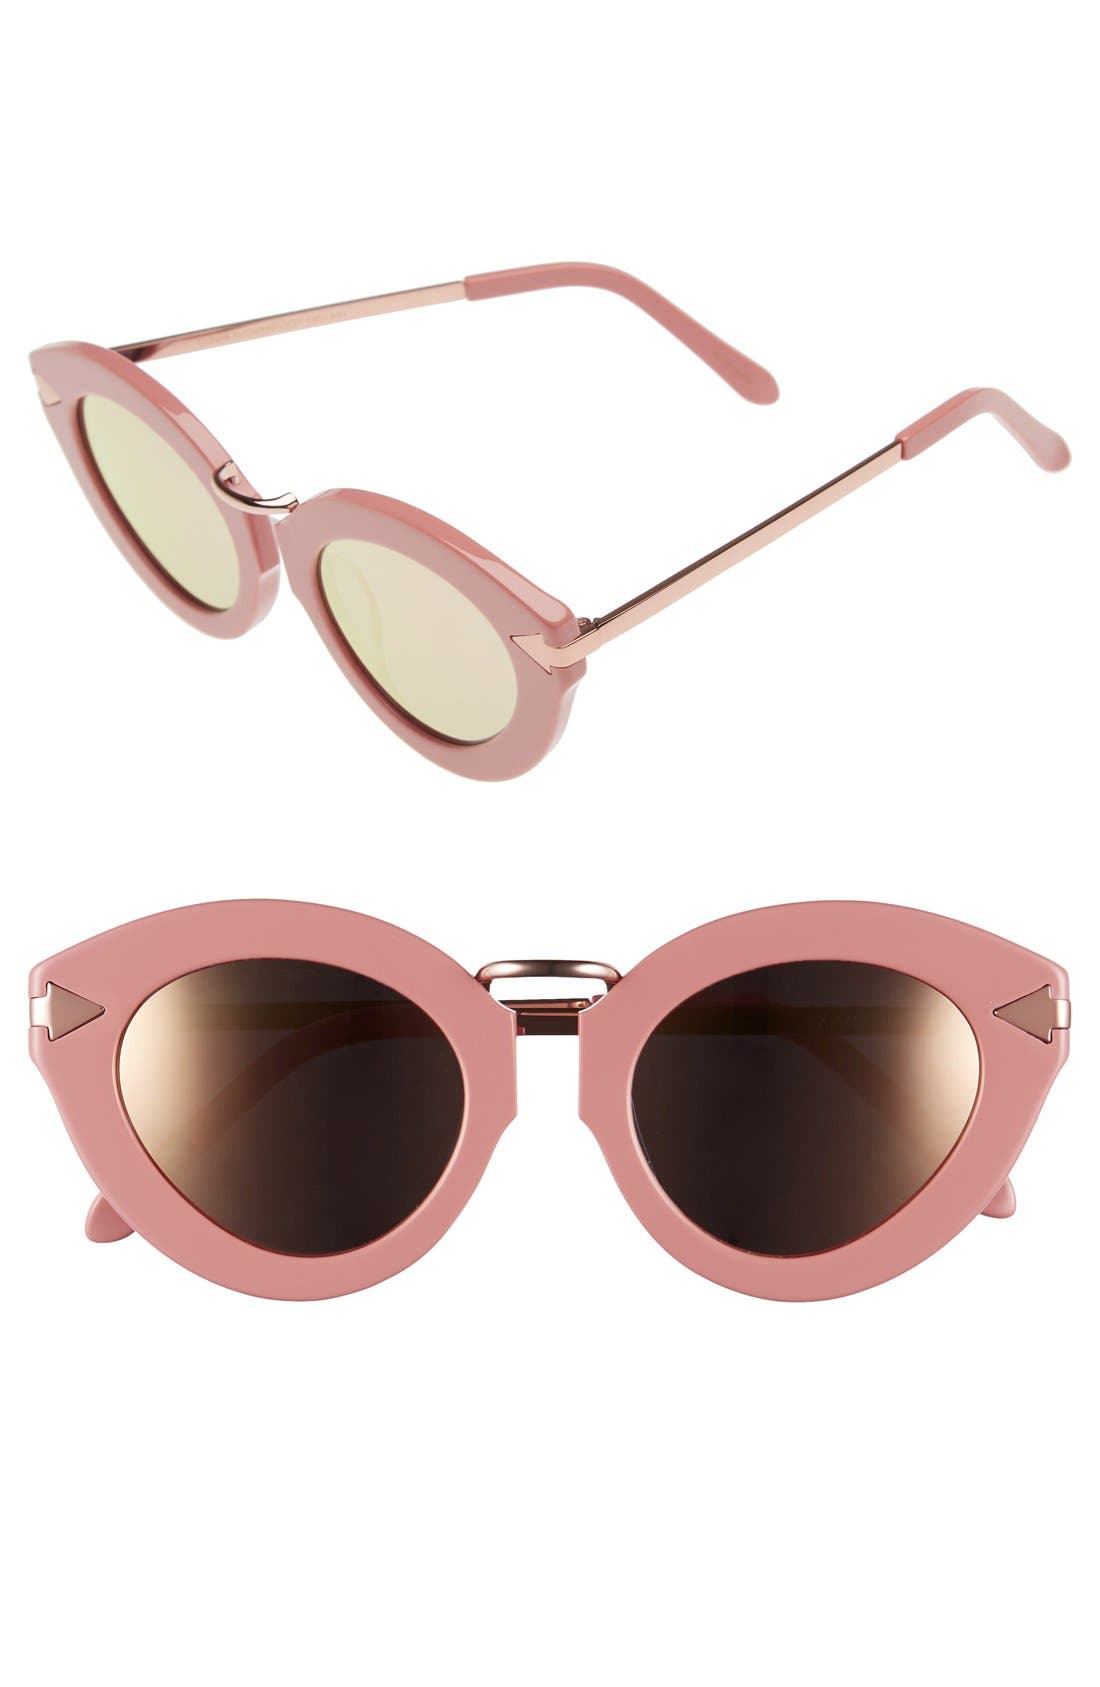 Main Image - Karen Walker 'Lunar Flowerpatch' 49mm Sunglasses